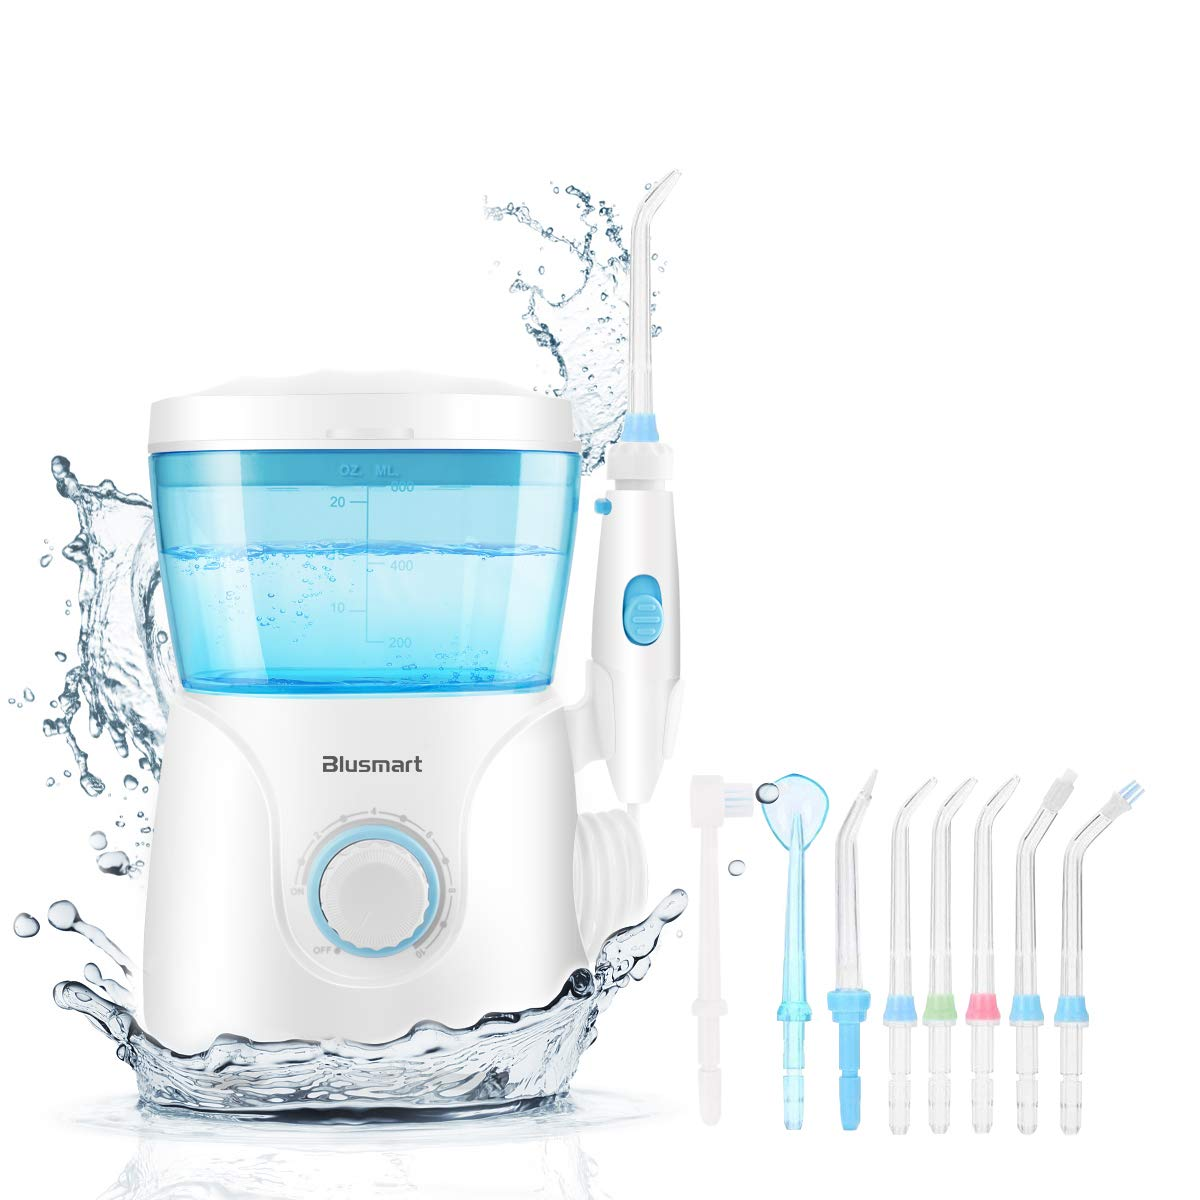 Blusmart Water Flosser for Teeth Countertop Dental Water Flossers 600ml Power Flossing Oral Irrigator 10 Pressure Settings for Family Use